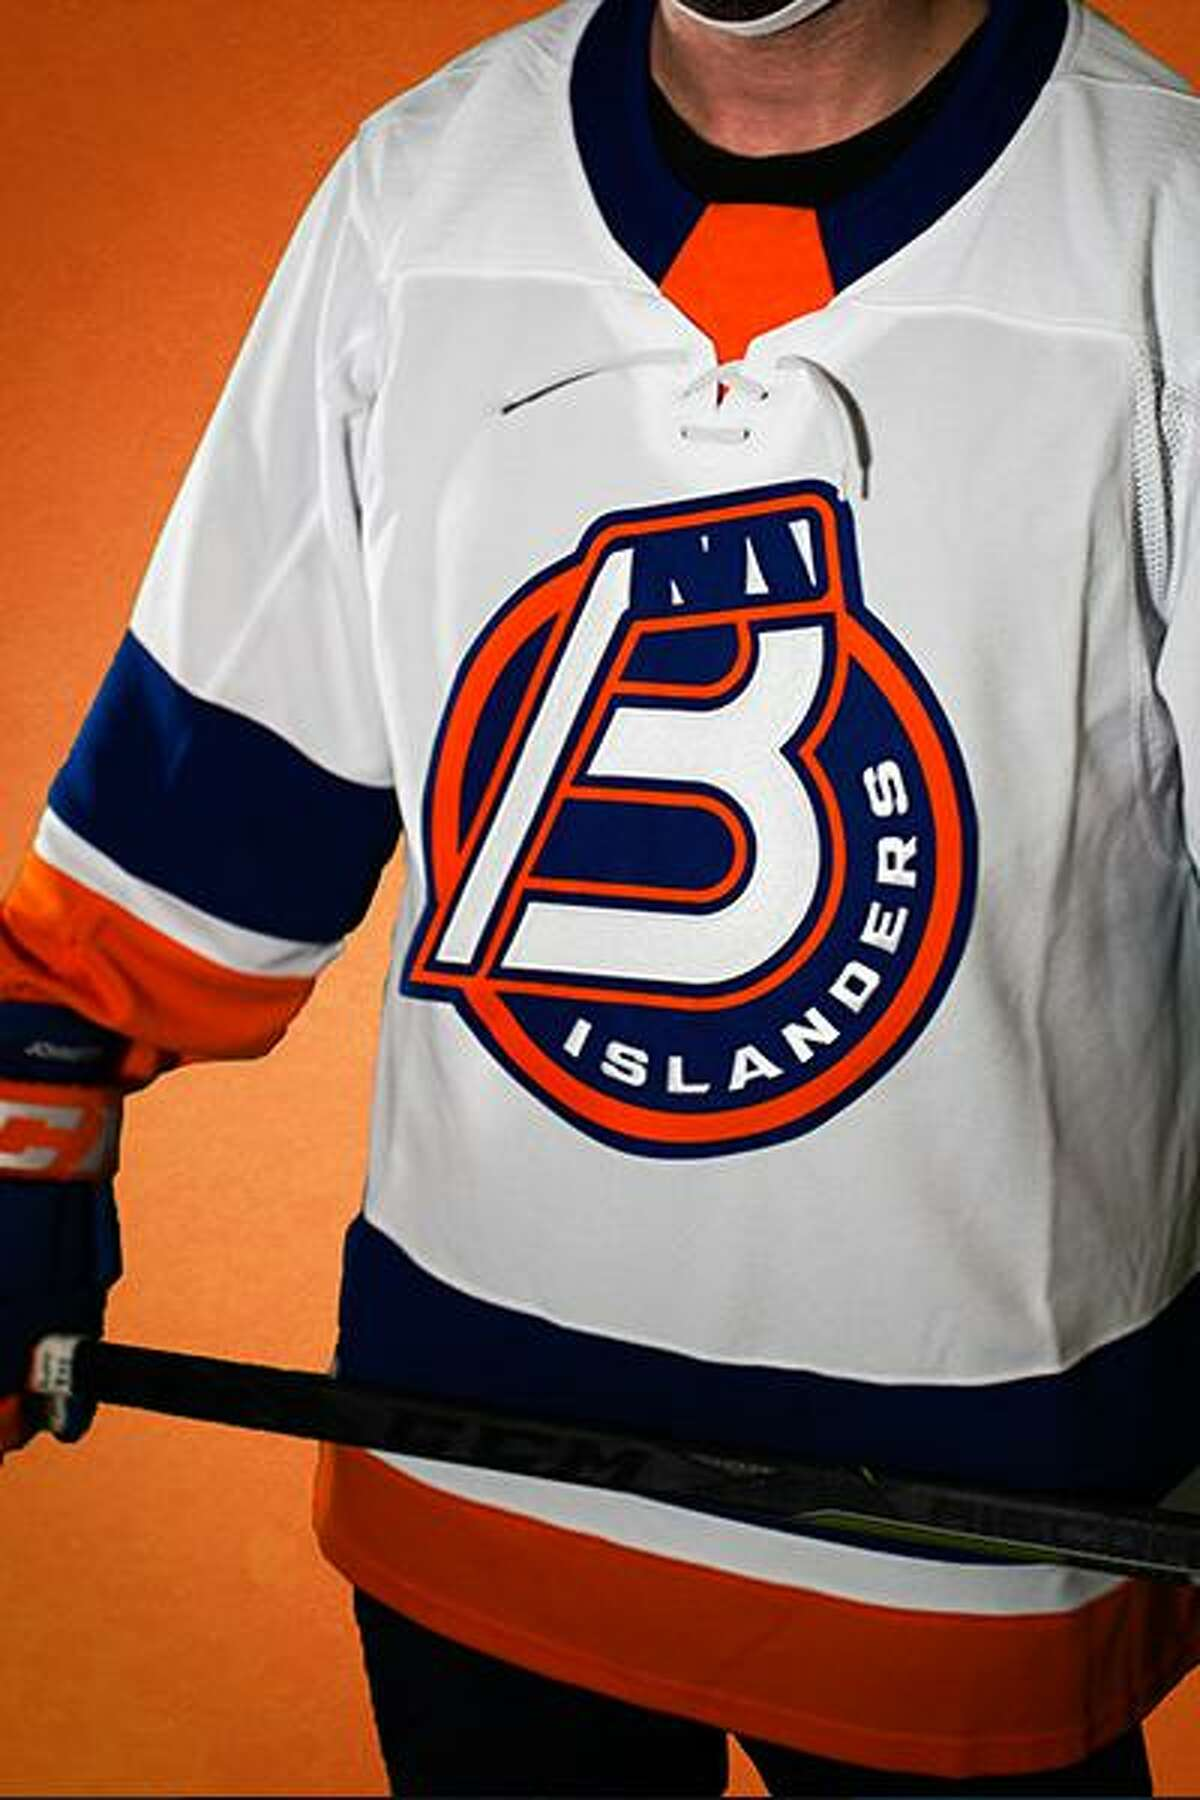 The Sound Tigers announced they are changing their name to the Bridgeport Islanders on Monday, May 10, 2021. The team's new logo is dispalyed on a home game jersey.